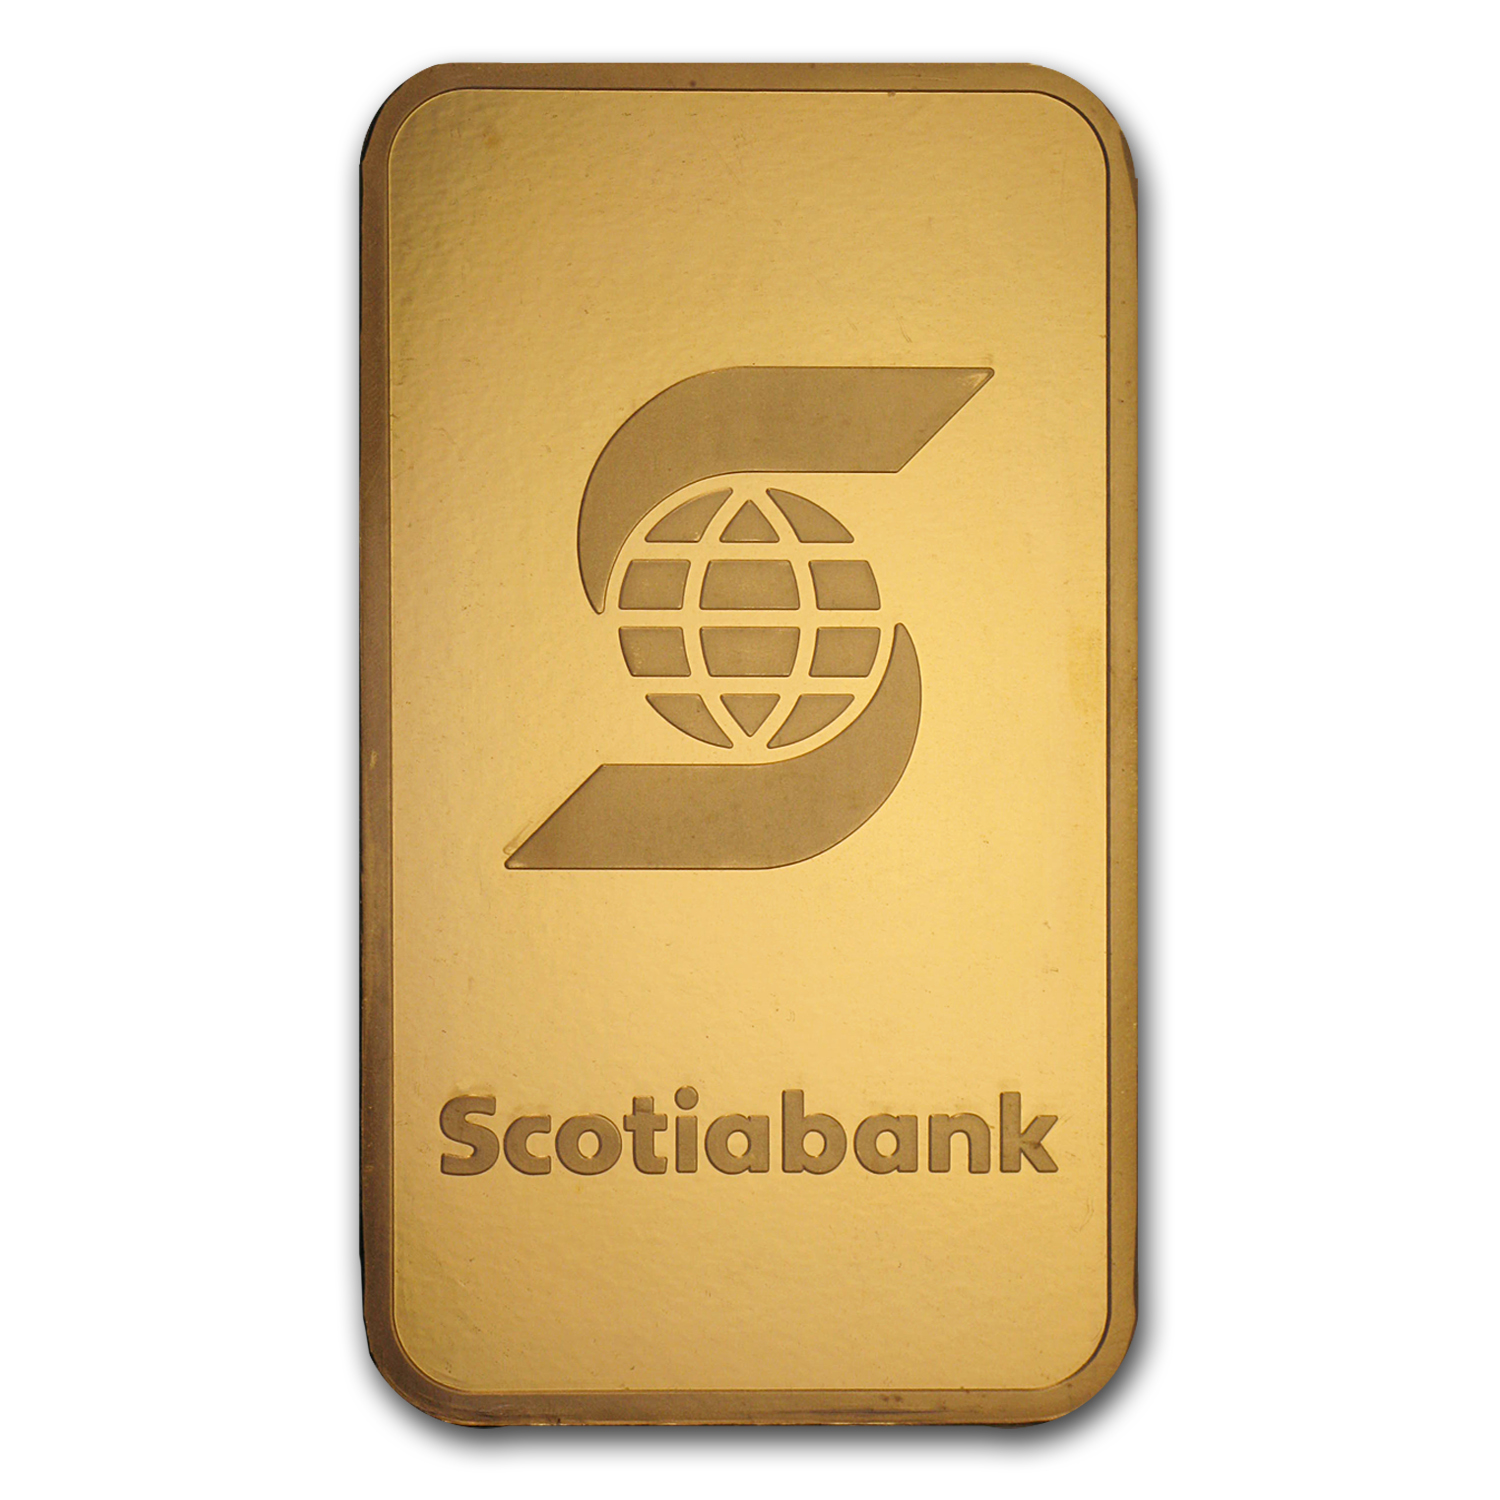 10 oz Gold Bars - Scotiabank